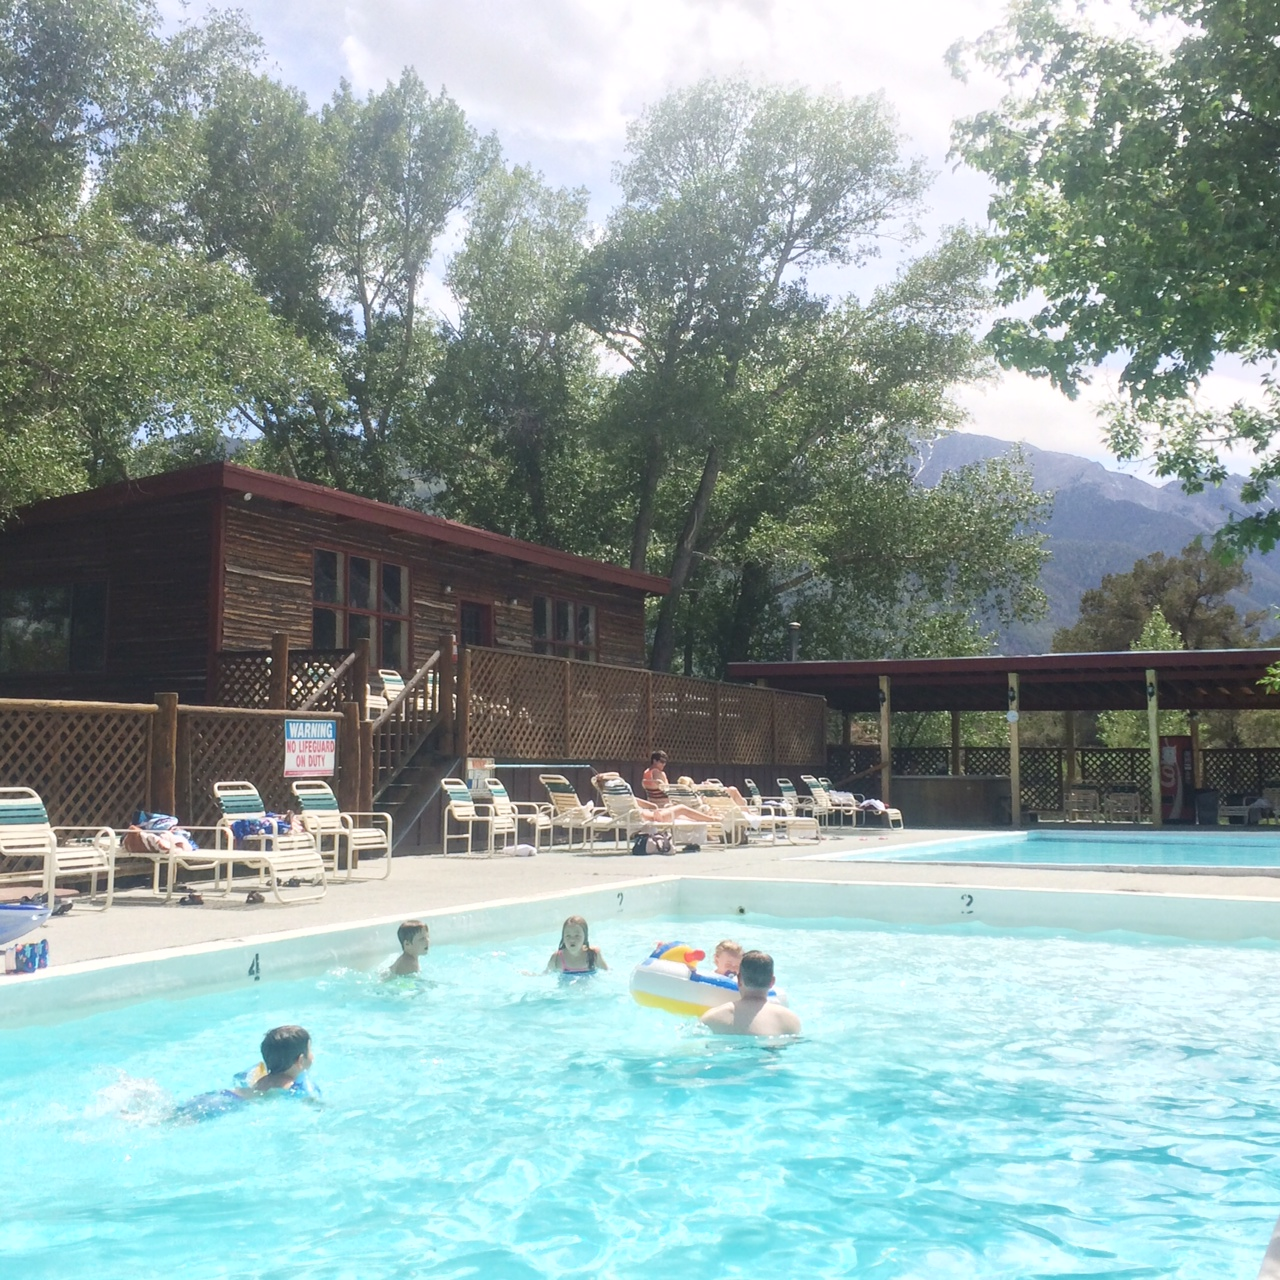 A pool heated by hot springs in this gorgeous setting, yes please :)